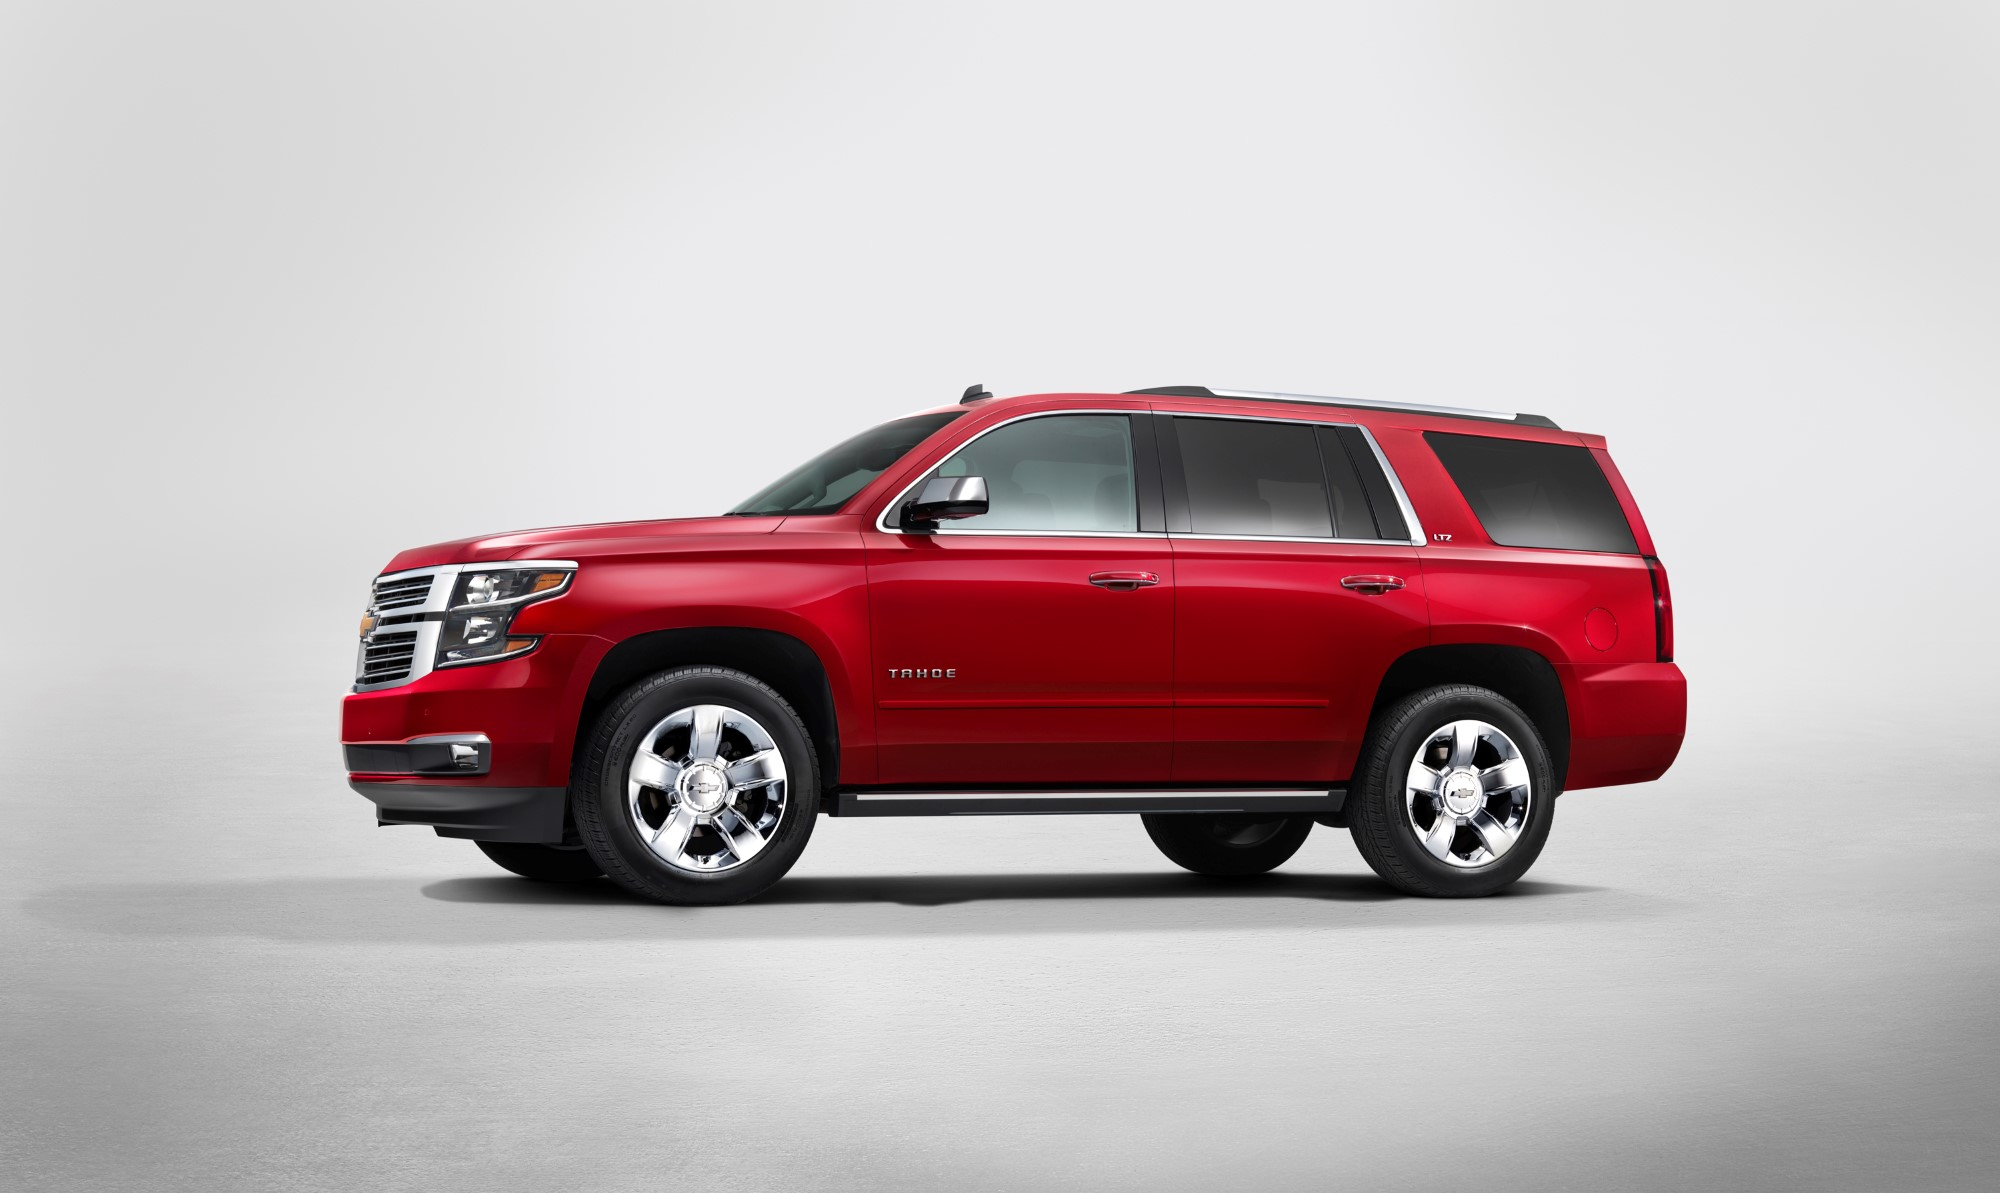 2015 Chevrolet Tahoe (Chevy) Review, Ratings, Specs, Prices, and